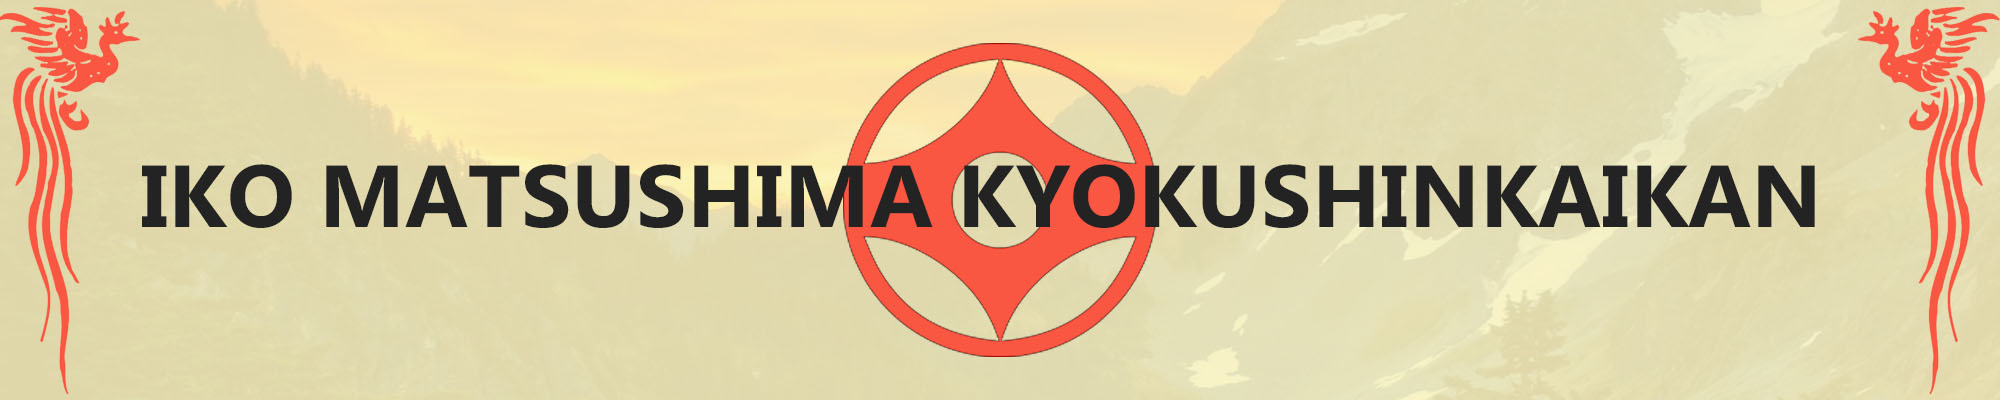 Karate Kyokushinkai Croatia